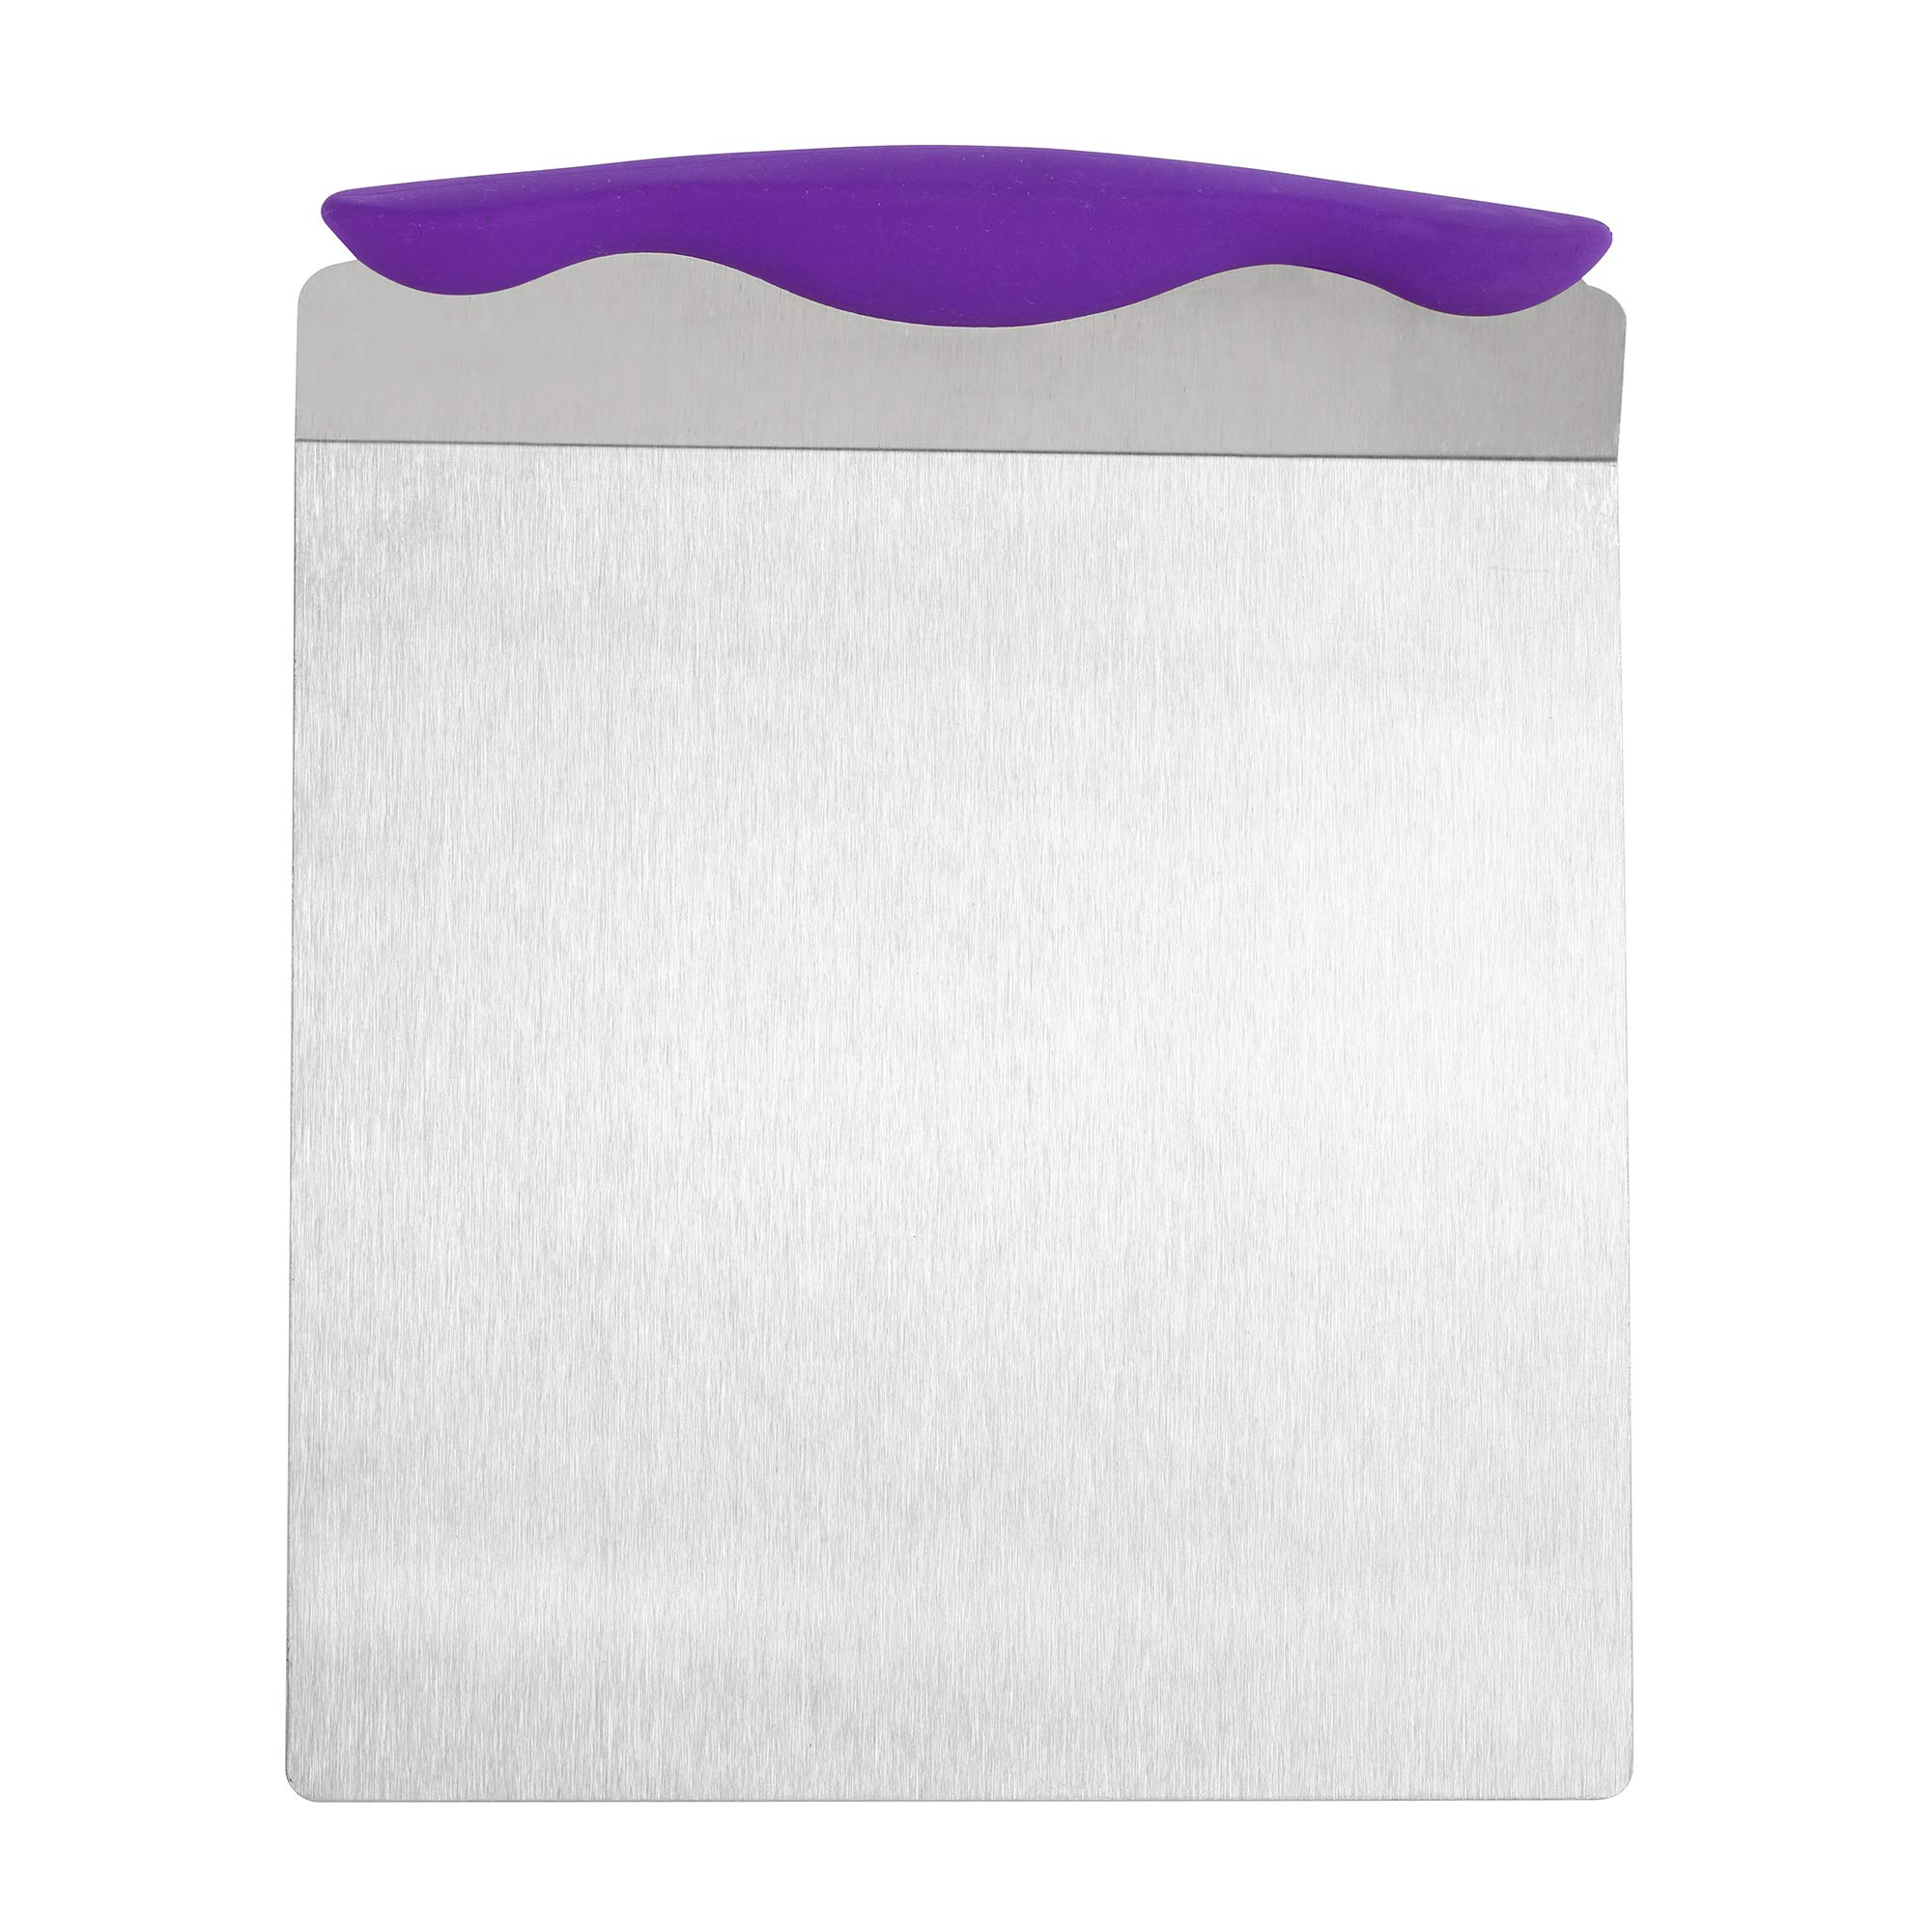 TOPHOME Kitchen Baking Cake Safe Lifter Transfer Shovel Stainless Steel Cookie Spatula Bottom Mover Scraper for Baking Homemade Pizza, Bread, Cake, Pie(Purple)